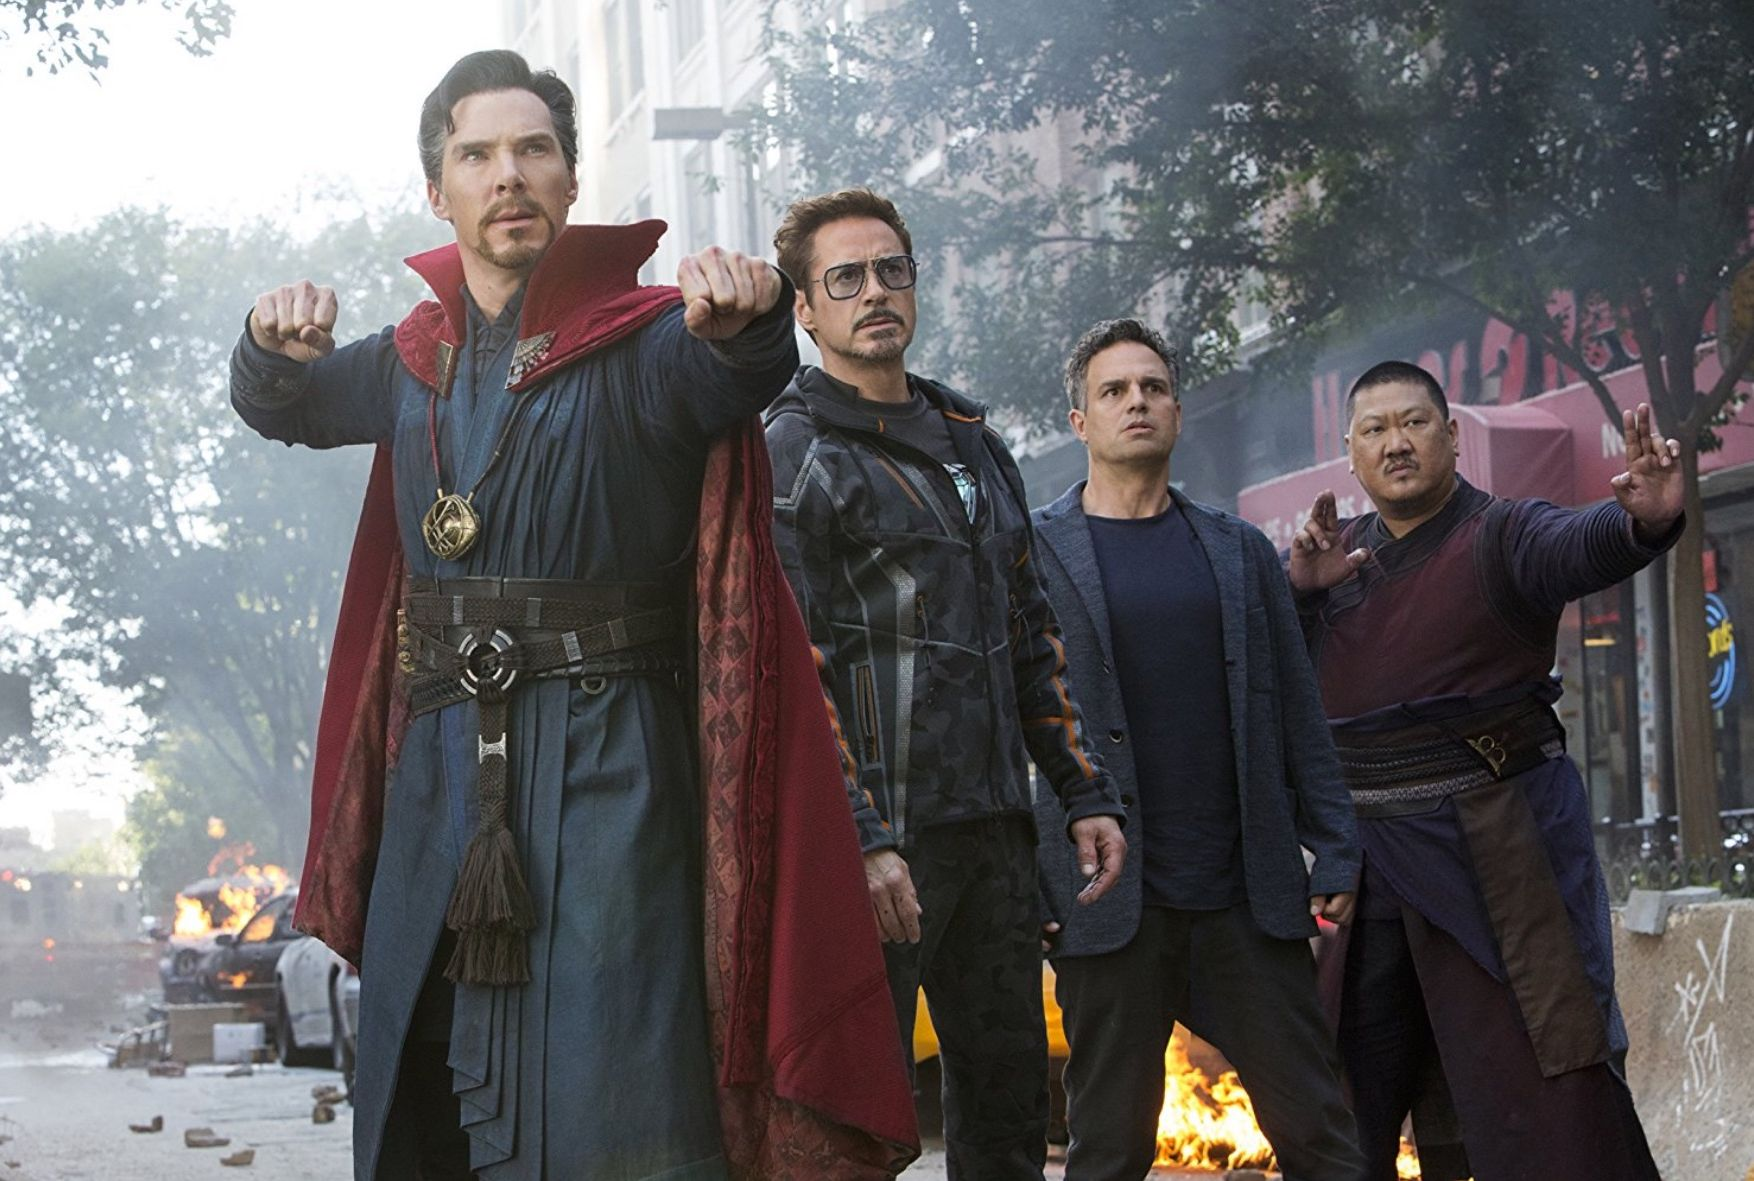 20 Marvel Cinematic Universe Movie Locations You Can Visit